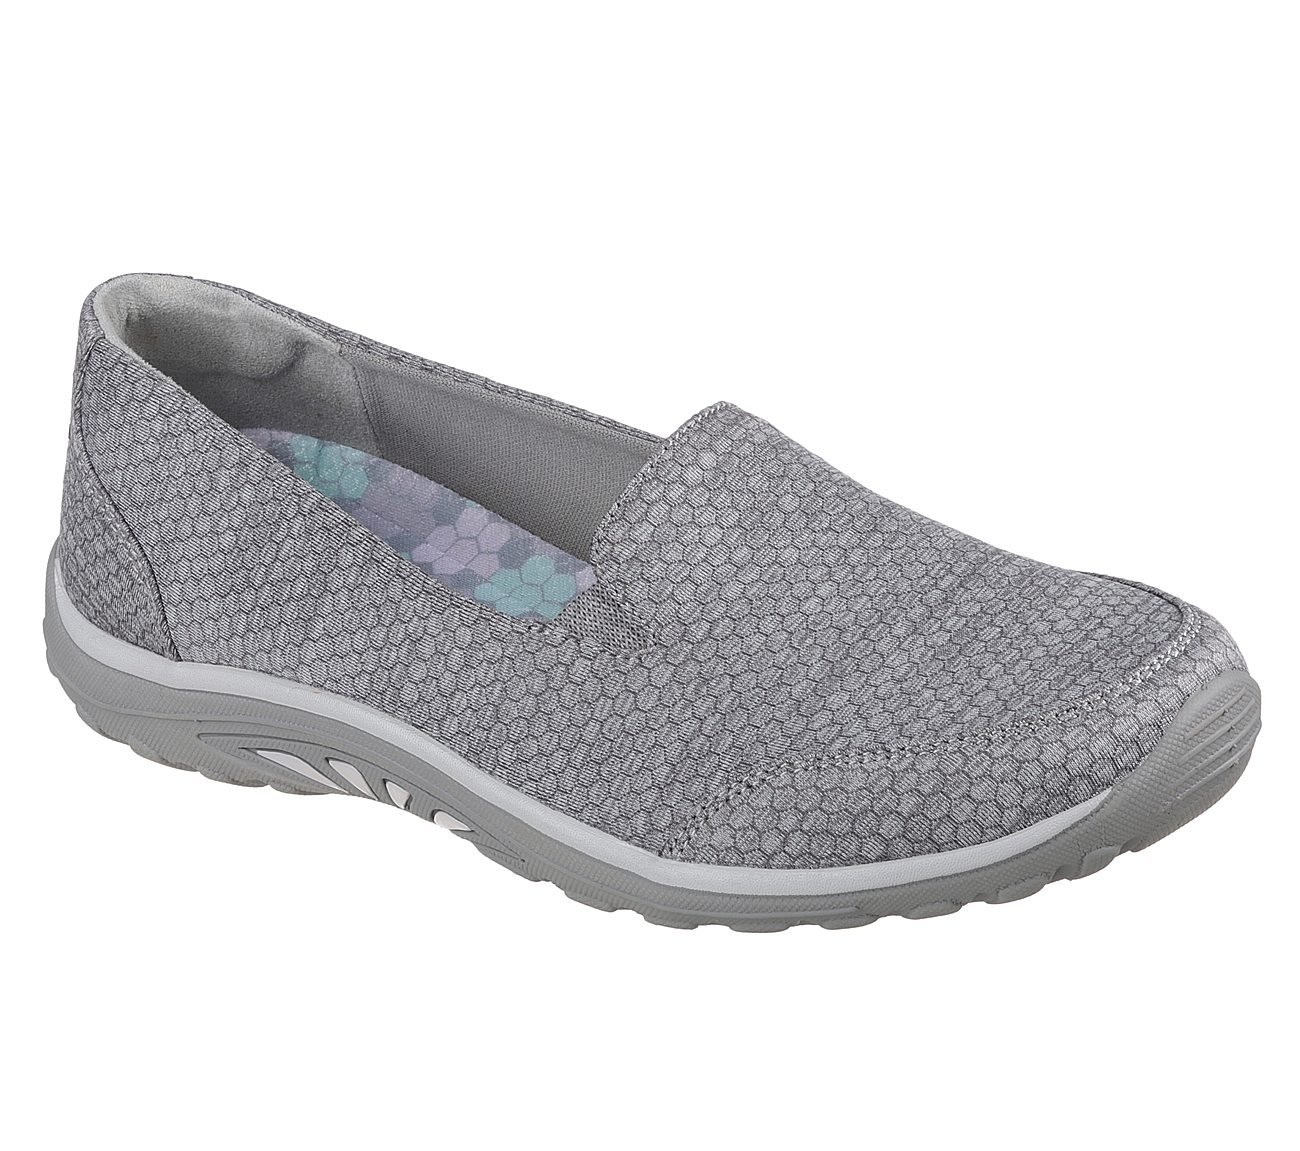 Skechers Relaxed Fit Reggae Fest Summit View Womens Slip On Flats Gray 7.5